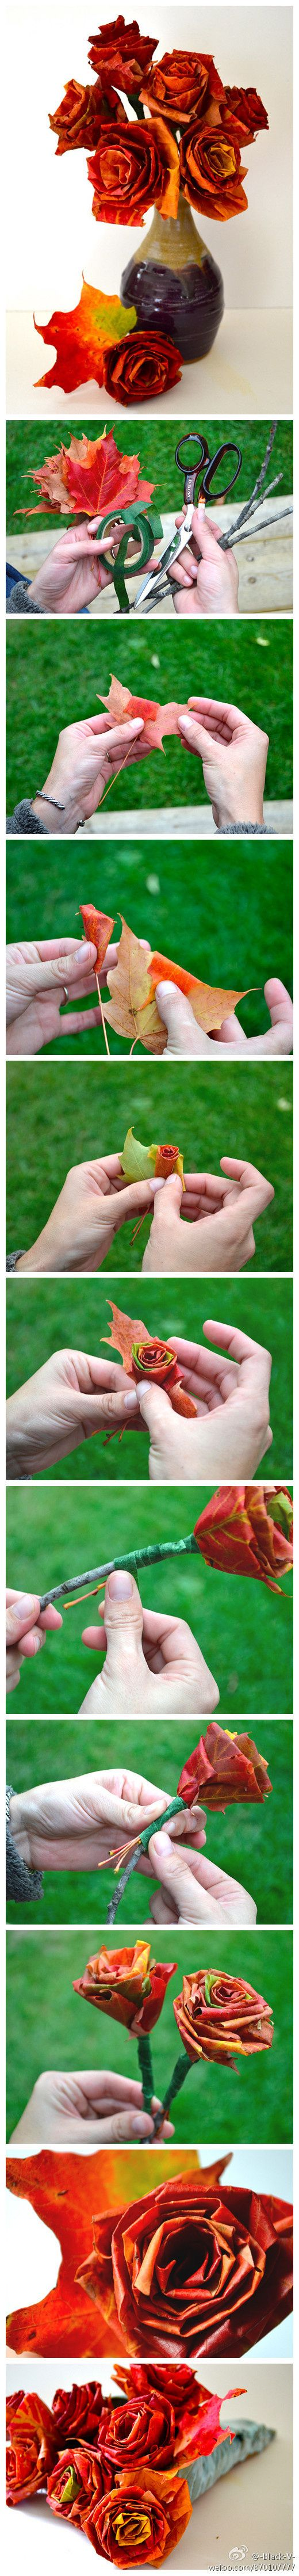 Autumn Roses!Crafts Ideas, Fall Leaves, Fall Table, Diy Crafts, Autumn Leaves, Paper Flower, Fall Flower, Leaf Rose, Fall Wedding